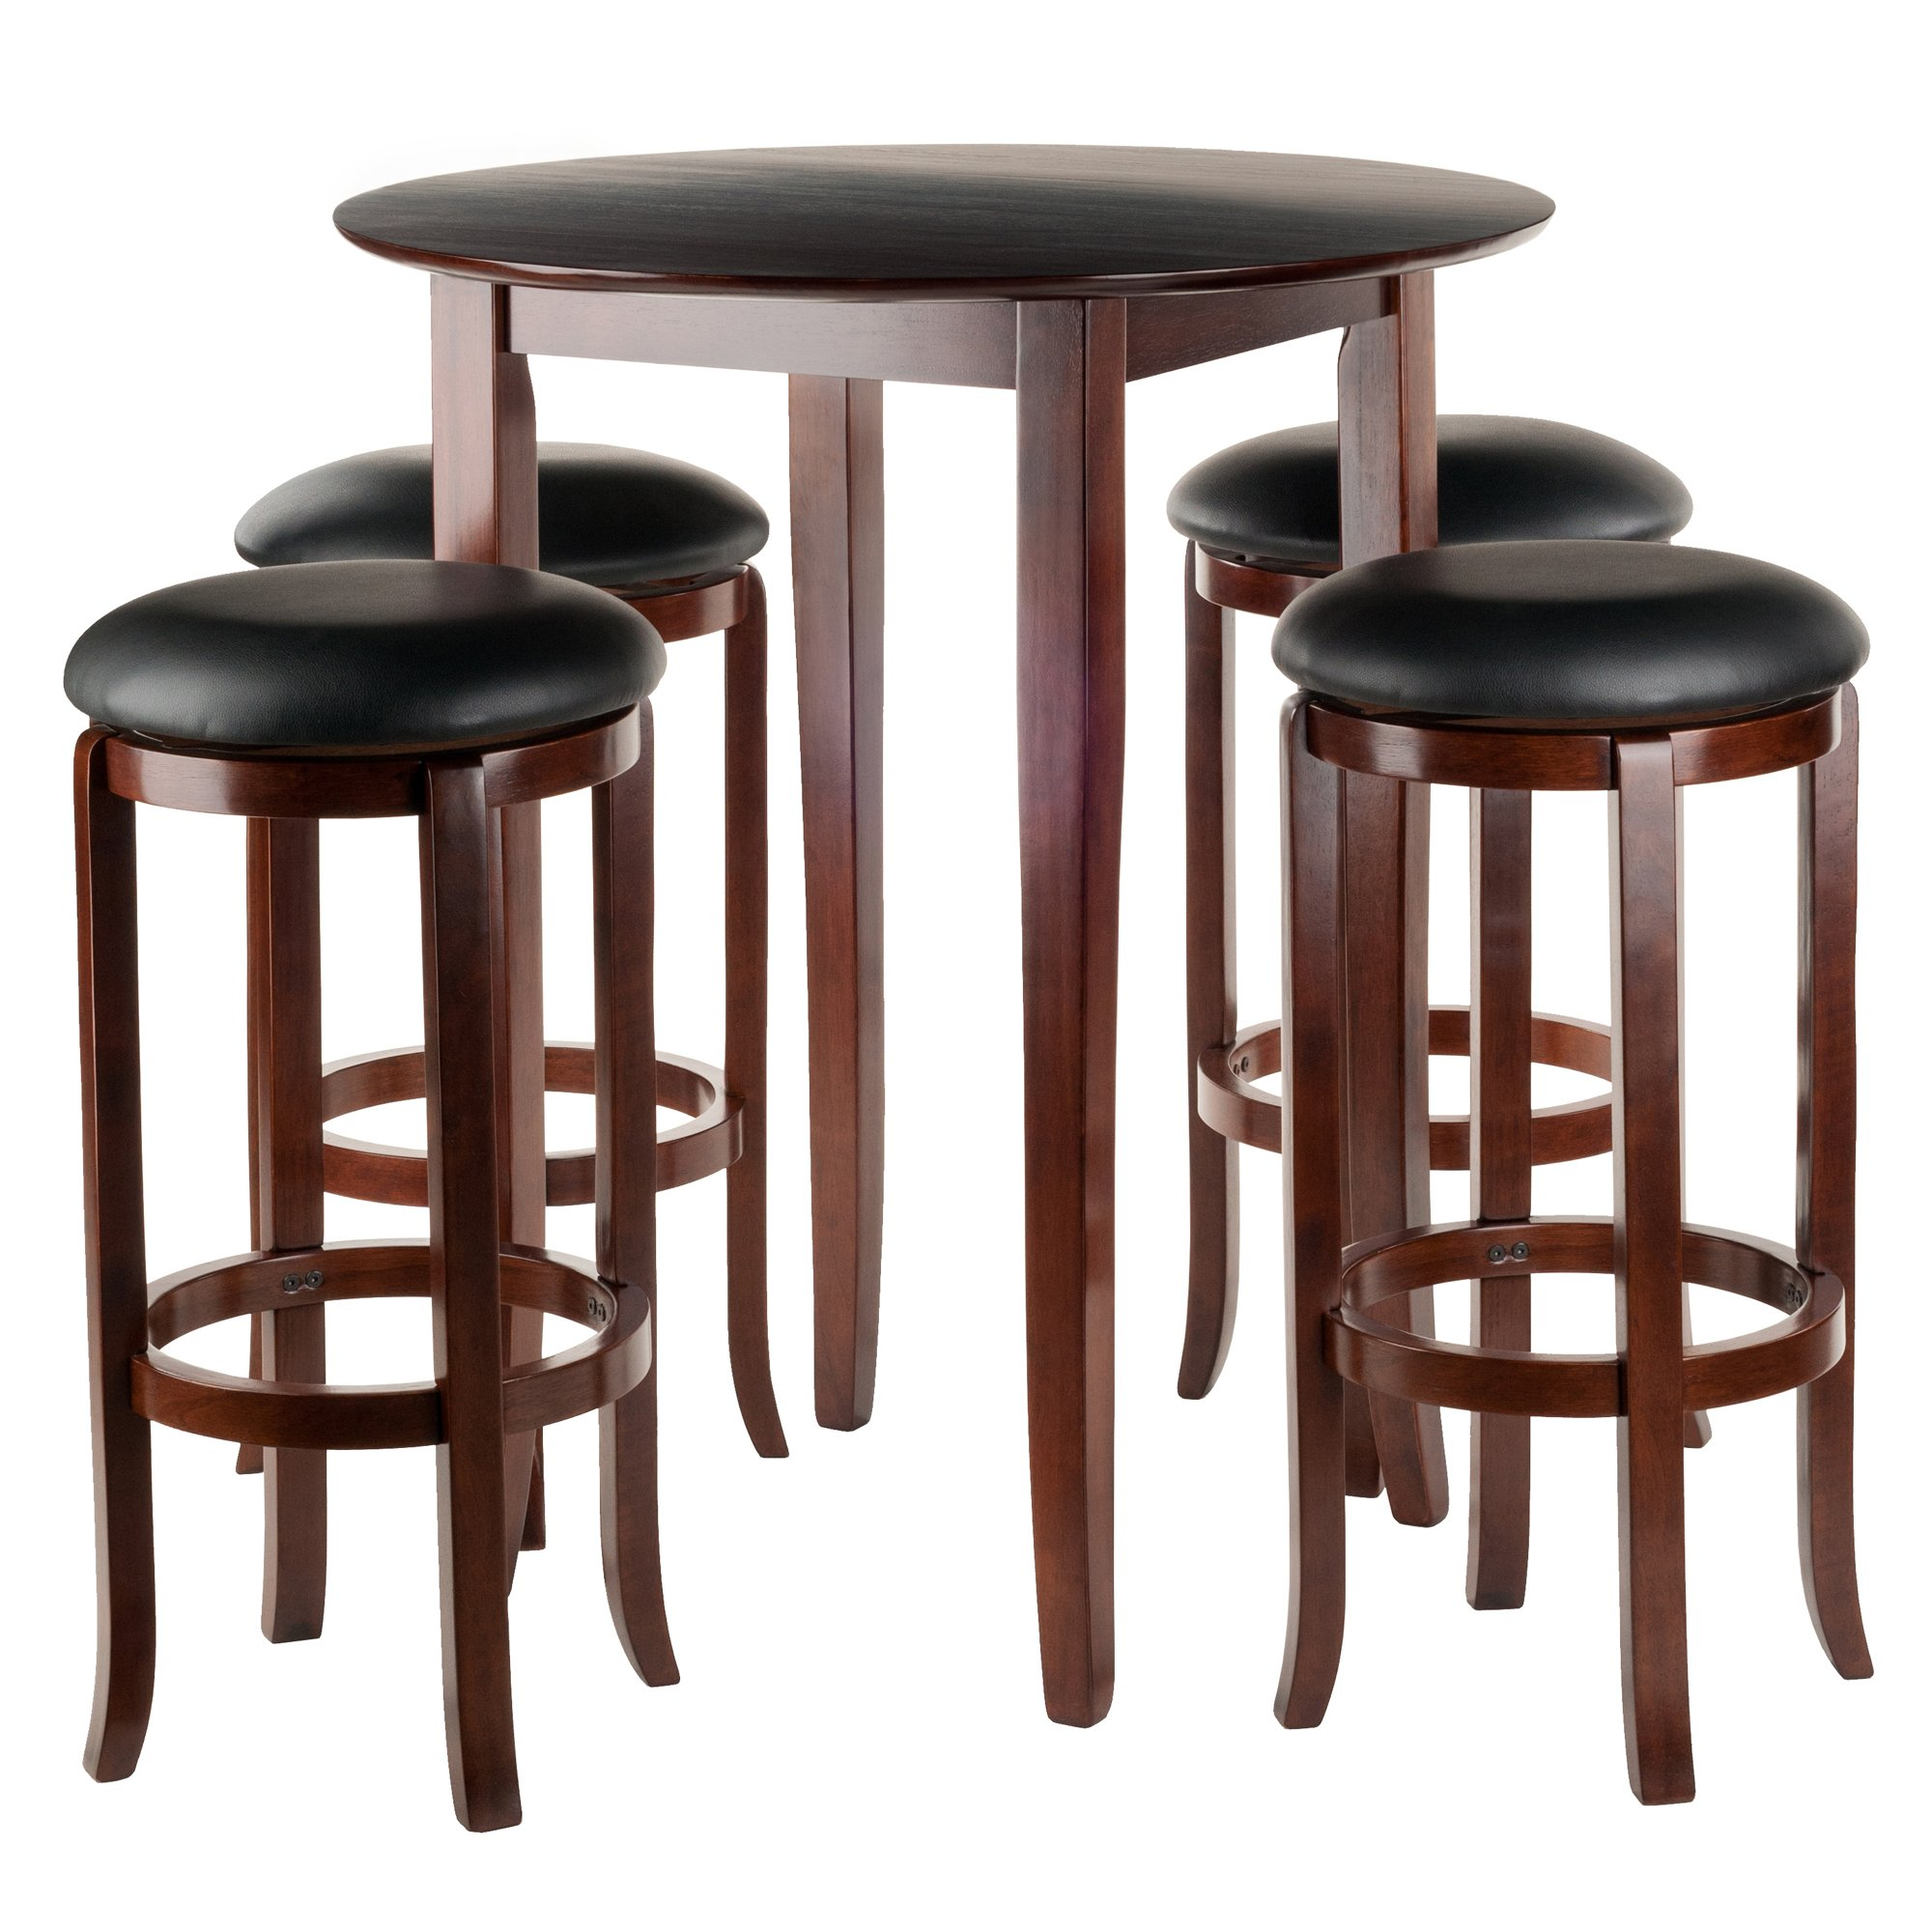 Winsome Fiona 5Piece Round High Pub Table Set in Antique Walnut Finish by Winsome Wood